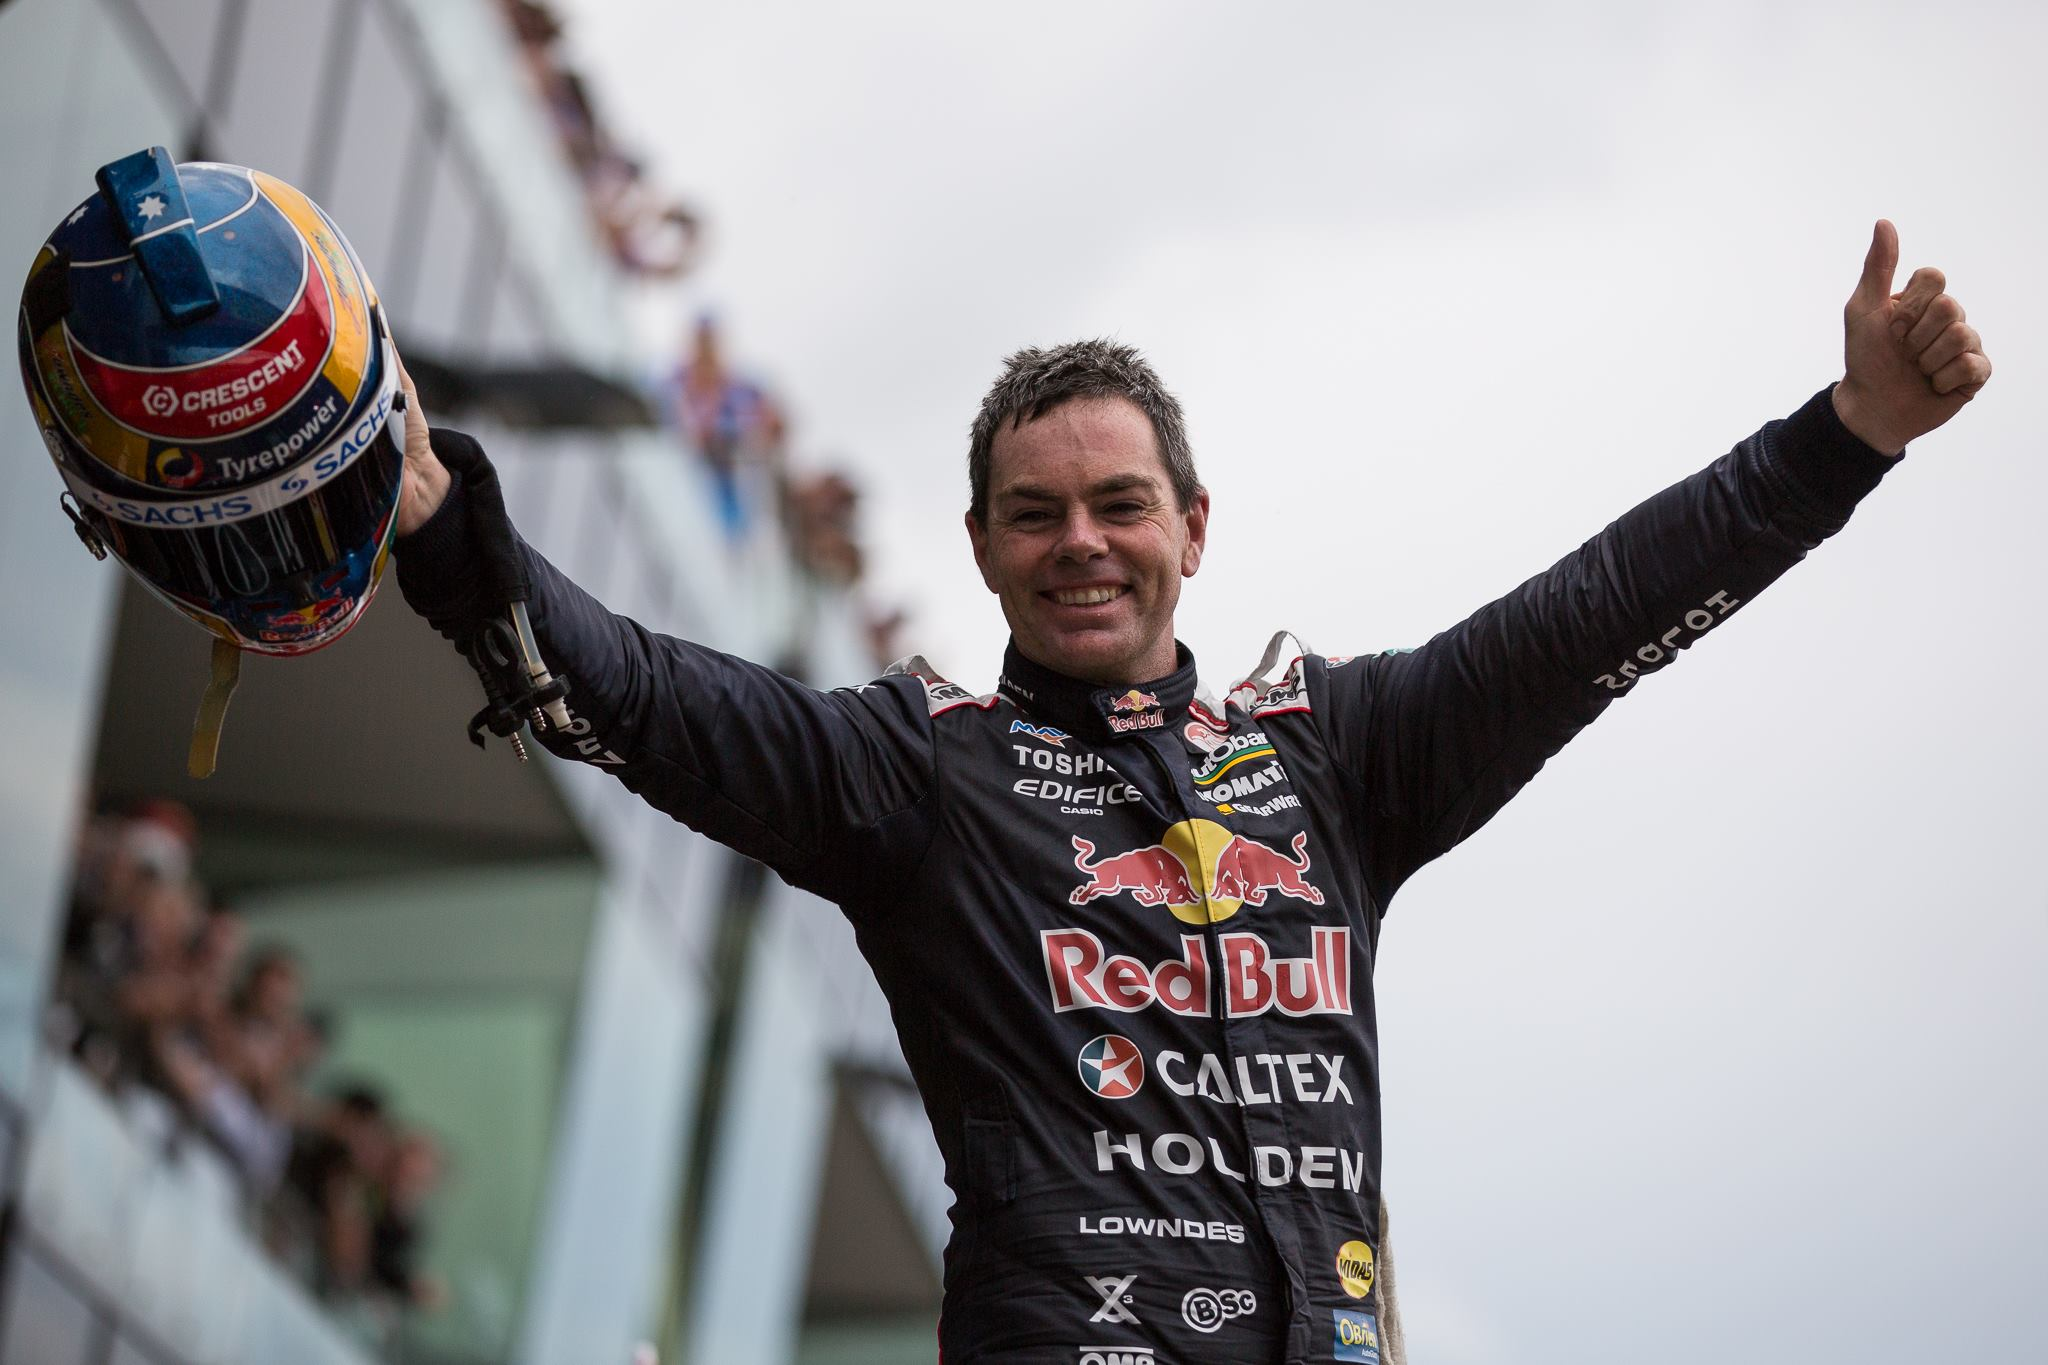 Craig Lowndes celebrating his sixth Bathurst 1000 win. Photo by Rhys Vandersyde